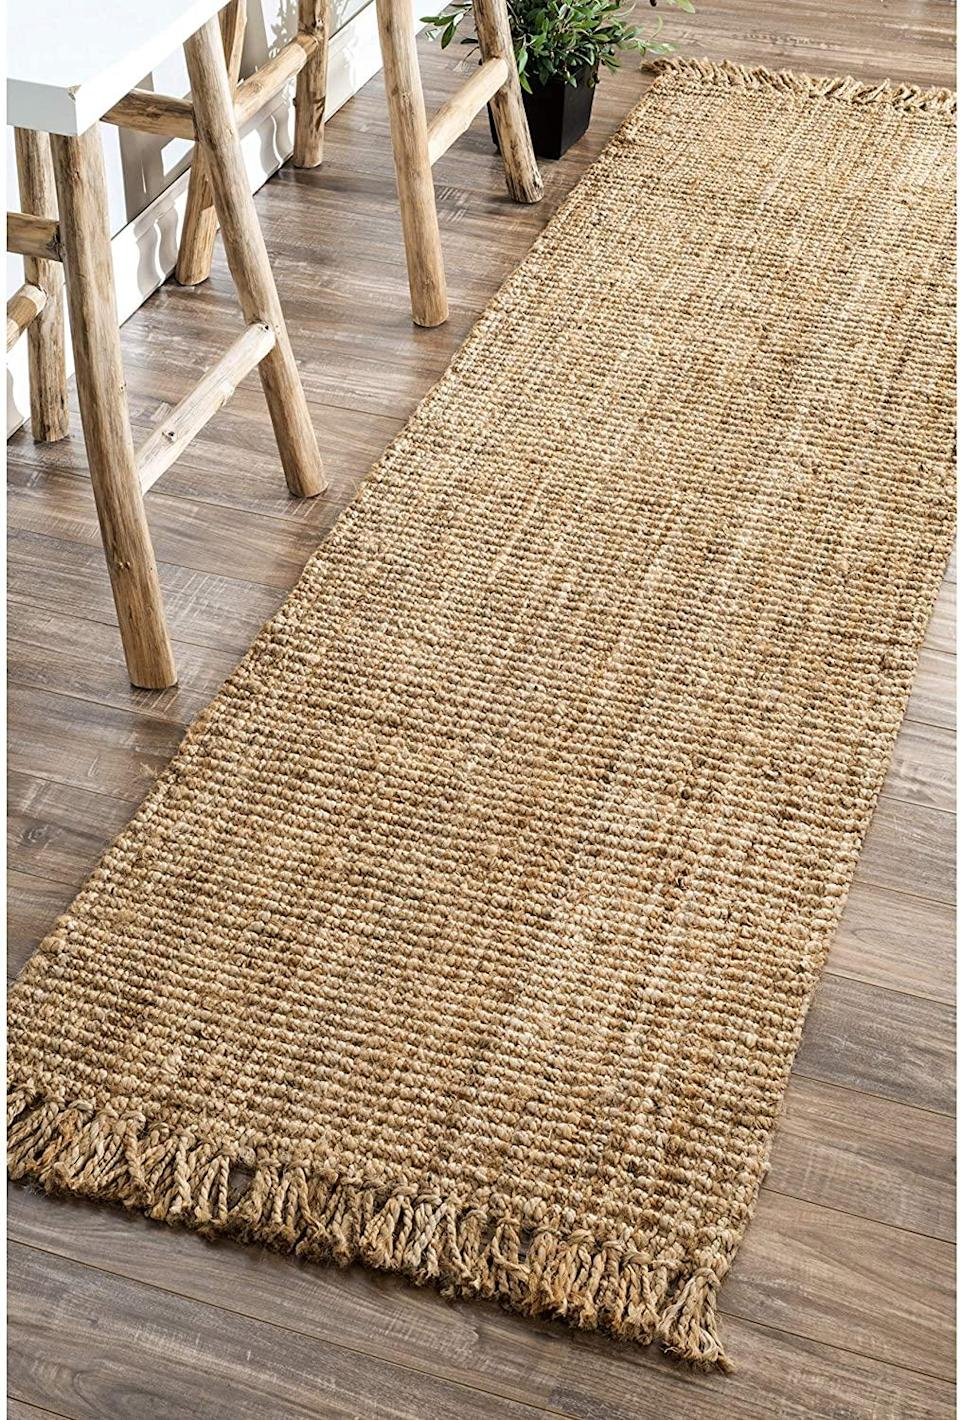 nuLOOM hand woven rug, area rugs